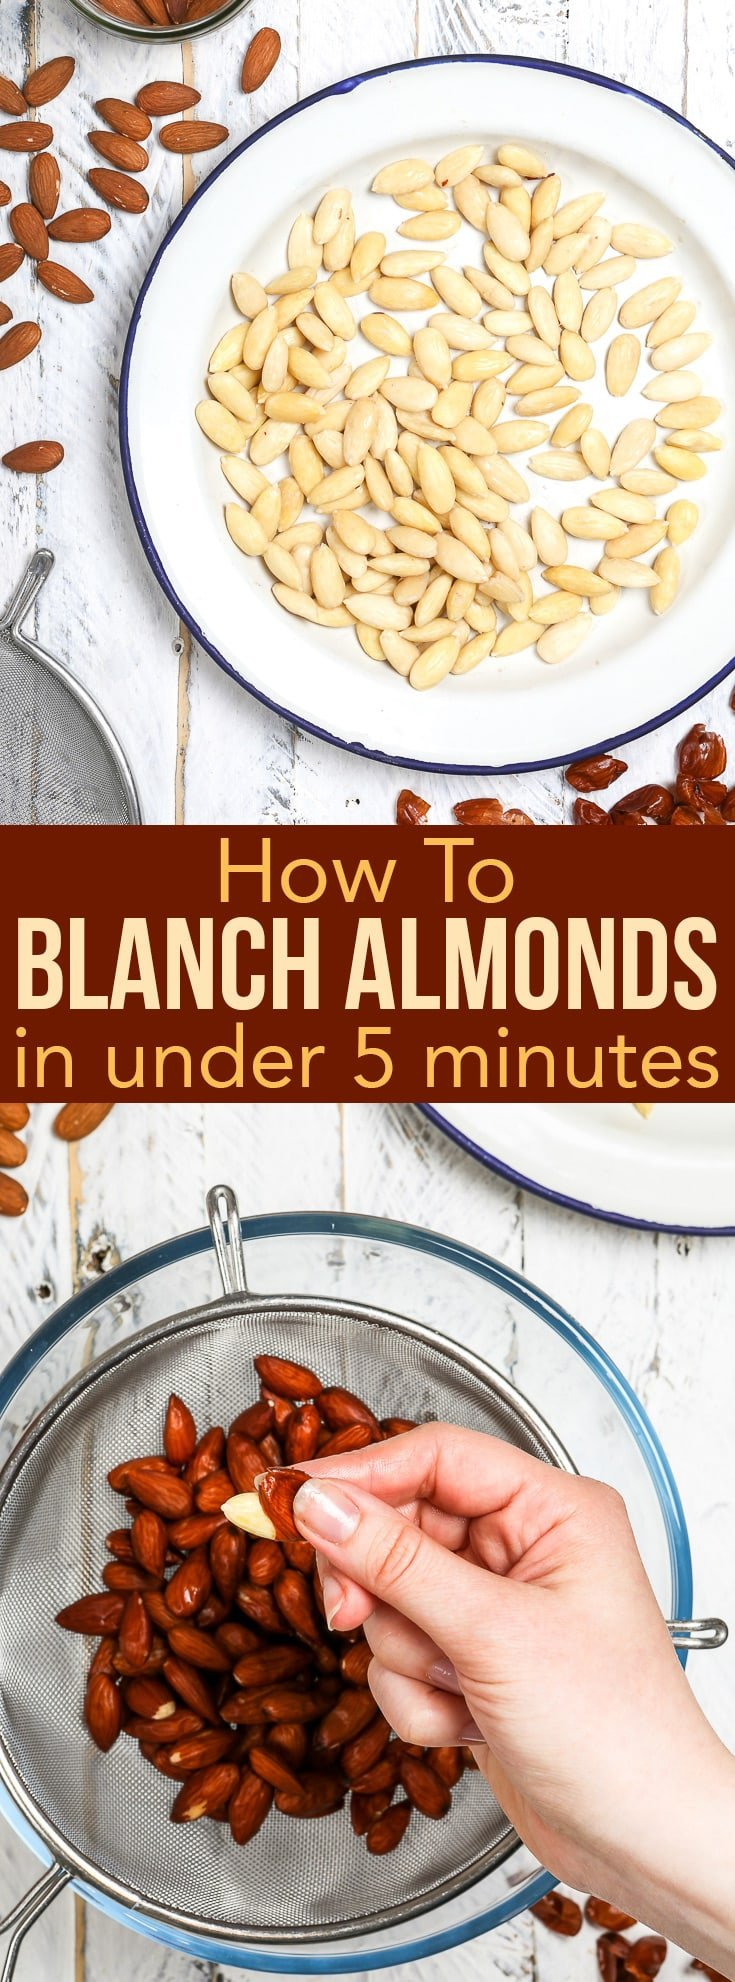 How To Blanch Almonds In Under 5 Minutes: a quick step-by-step guide to blanching almonds. Blanching almonds at home is much more cost-effective than buying them. And with this fool-proof how to blanch almonds guide – it's easier and quicker than ever! Baking tips and tricks. Blanched almonds. Ground almonds. Almond flour recipes. Almond recipes. Almond desserts. Almond dessert recipes. Baking ideas. Easy recipes. #recipe #easyrecipe #howto #diy